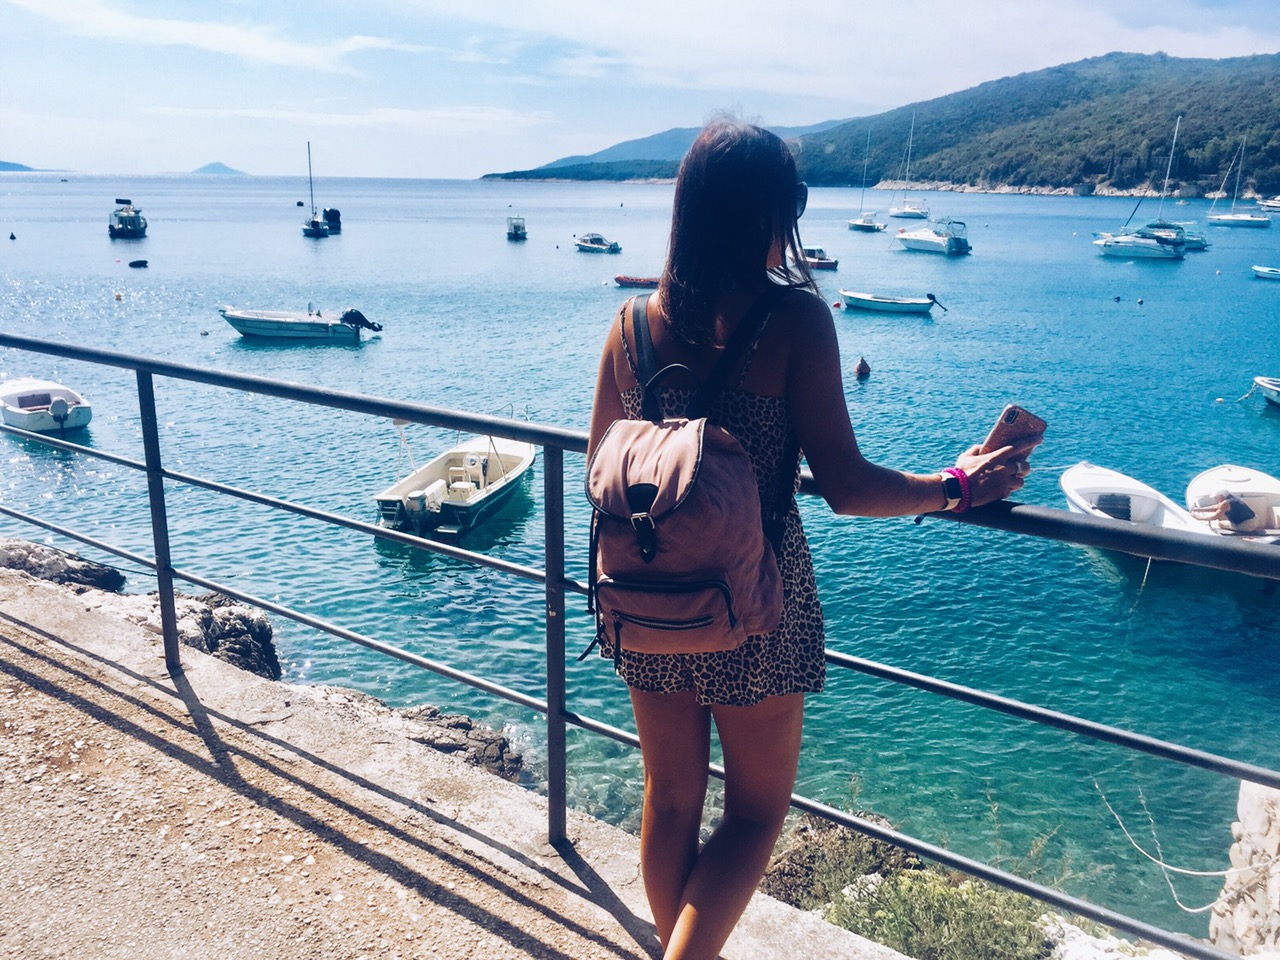 Me looking out at the beautiful view in Croatia.